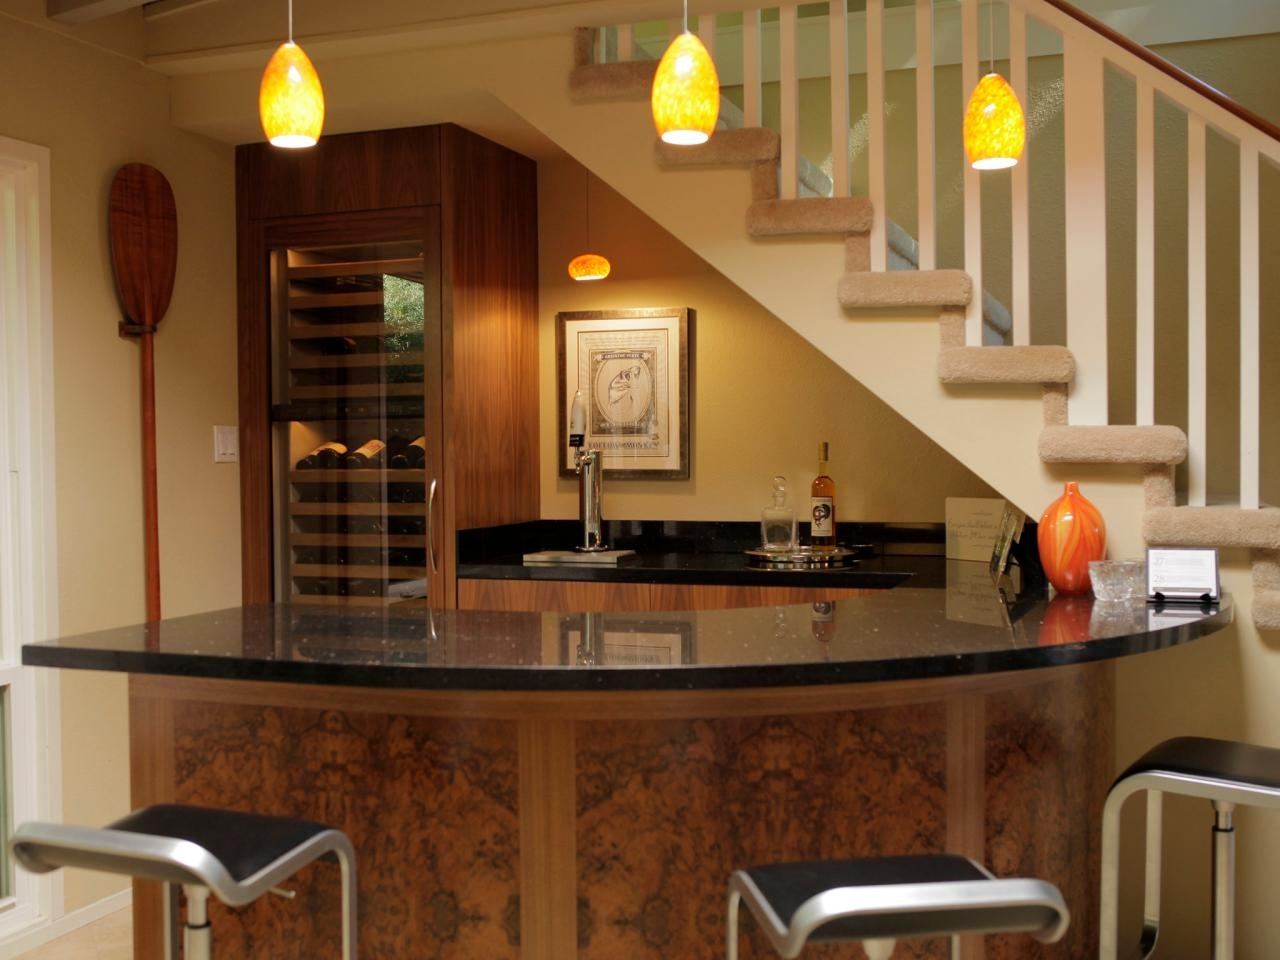 10 Elegant Basement Bar Ideas For Small Spaces %name 2020